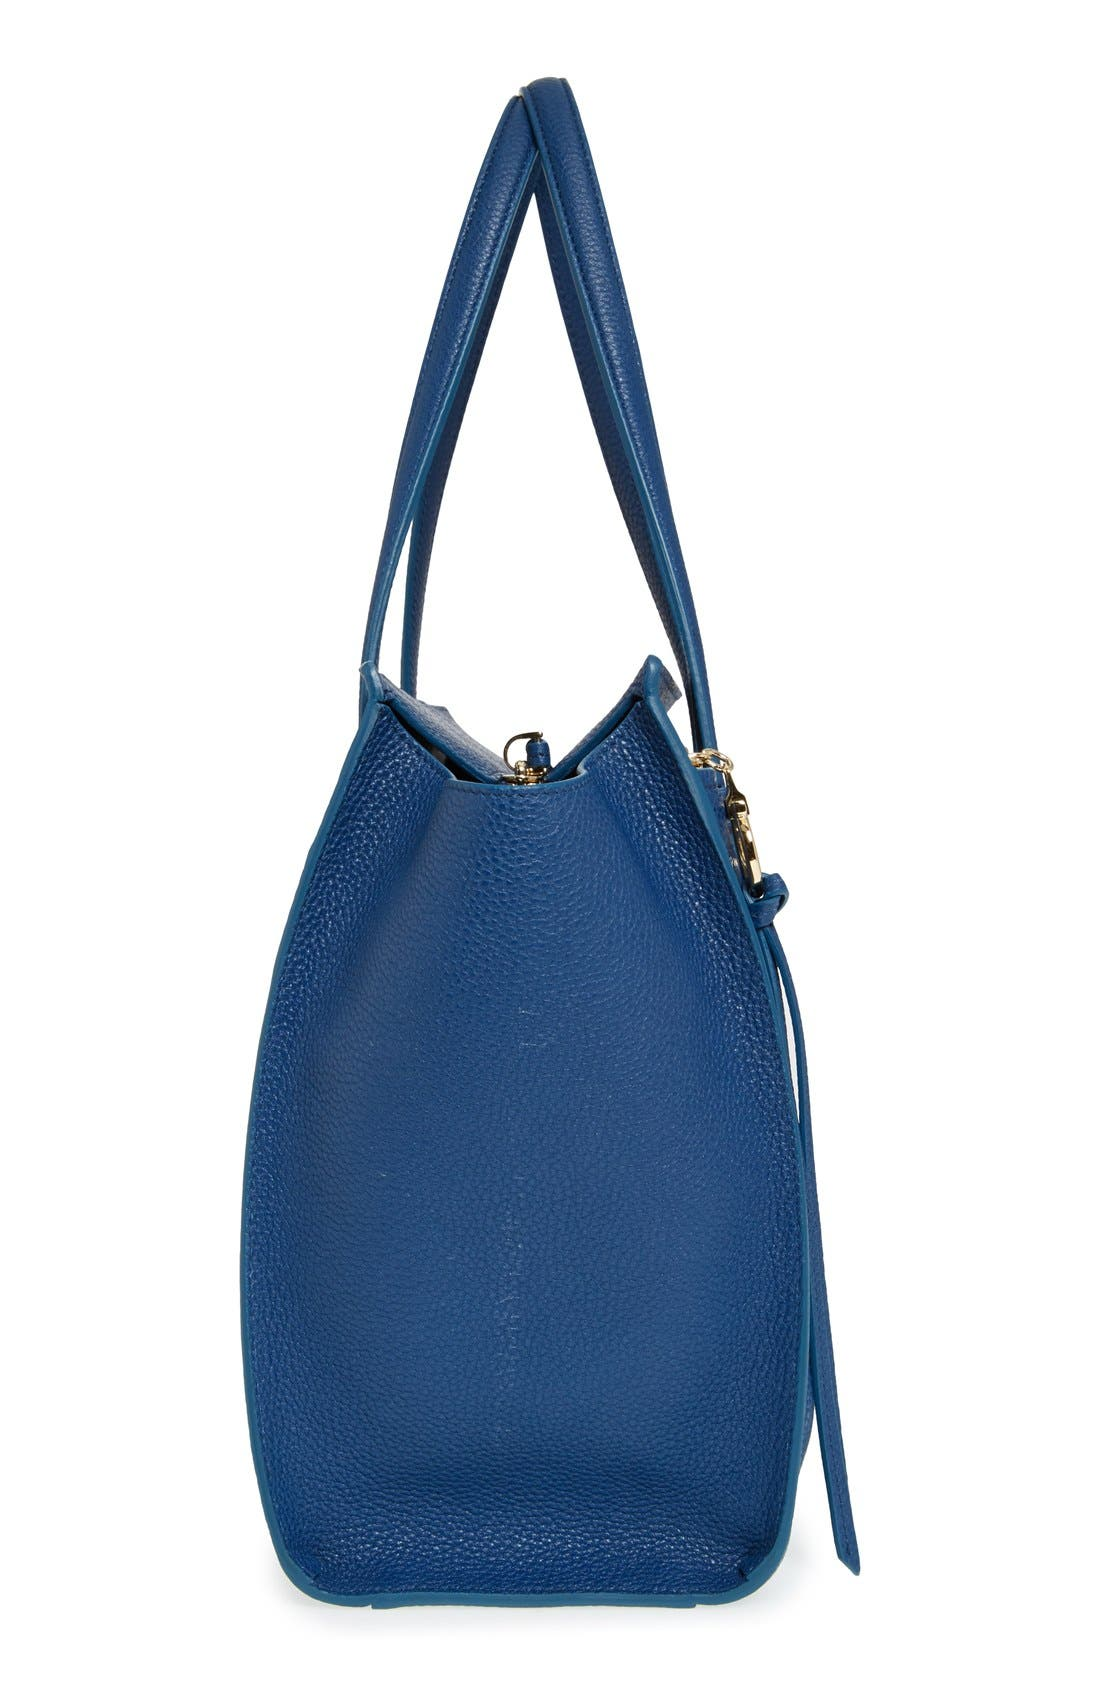 'Small Amy' Calfskin Leather Tote,                             Alternate thumbnail 3, color,                             400